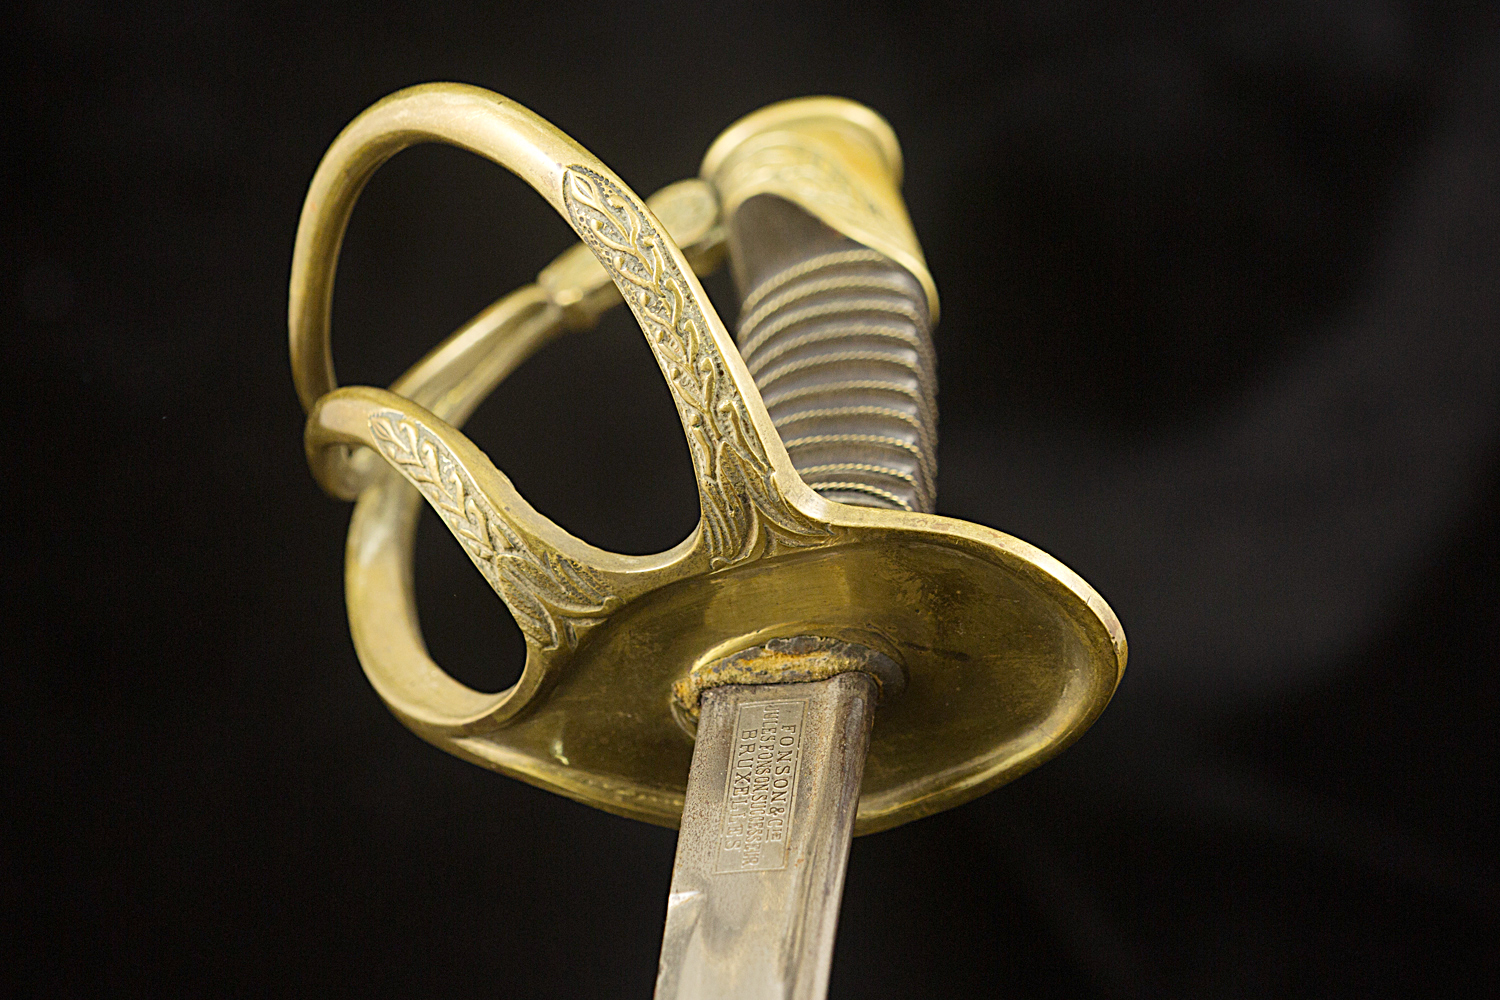 S000049_Belgian_Sword_Detail_Hilt_Bottom